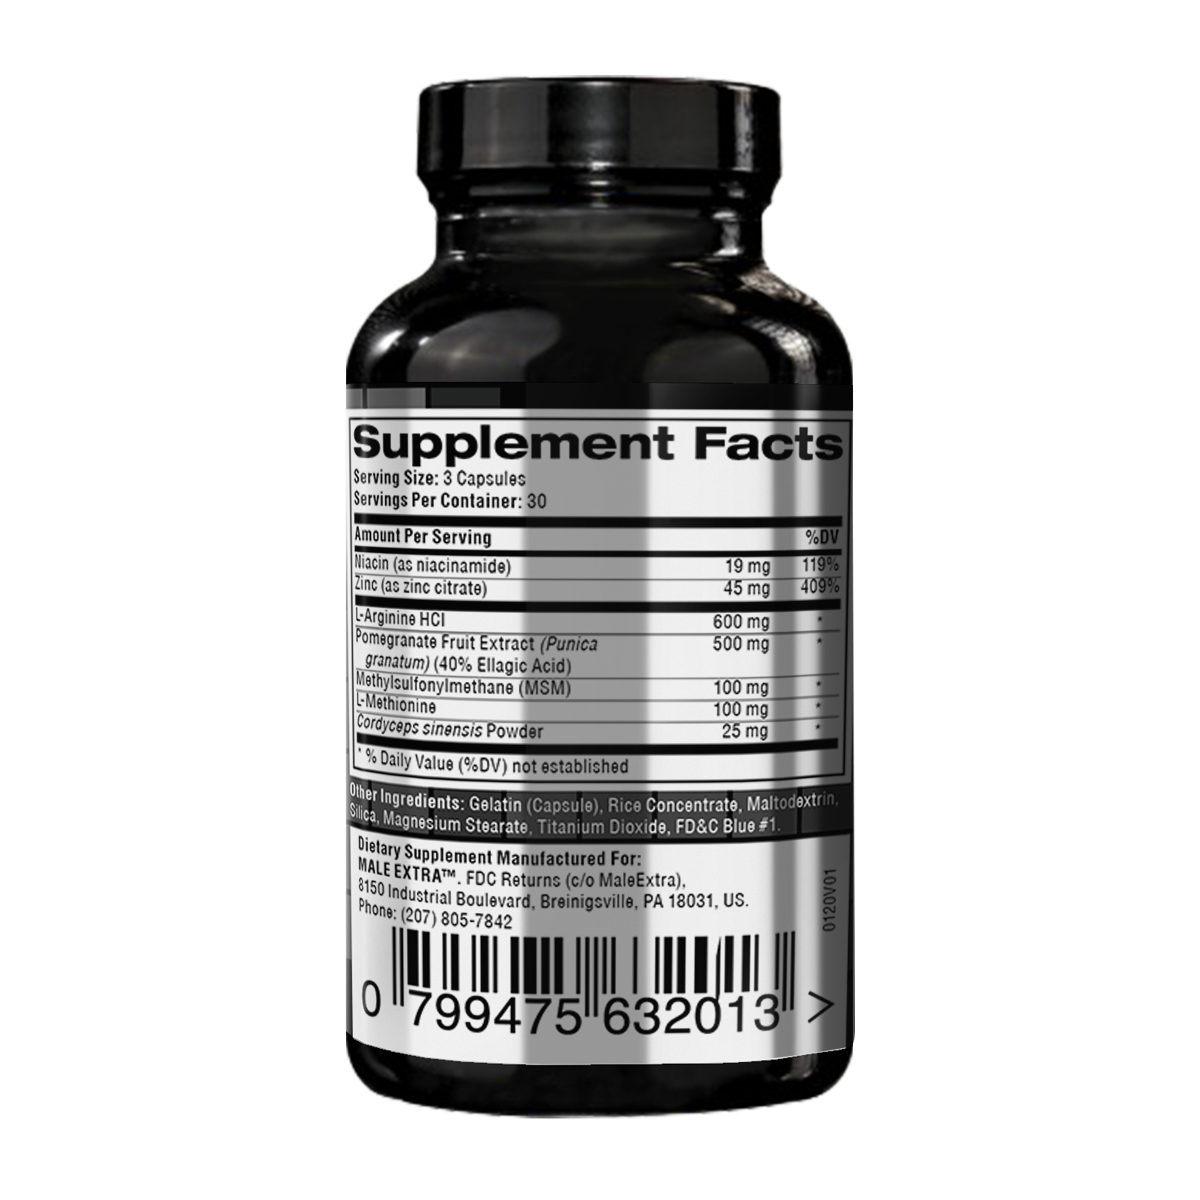 MaleExtra supplement facts photo